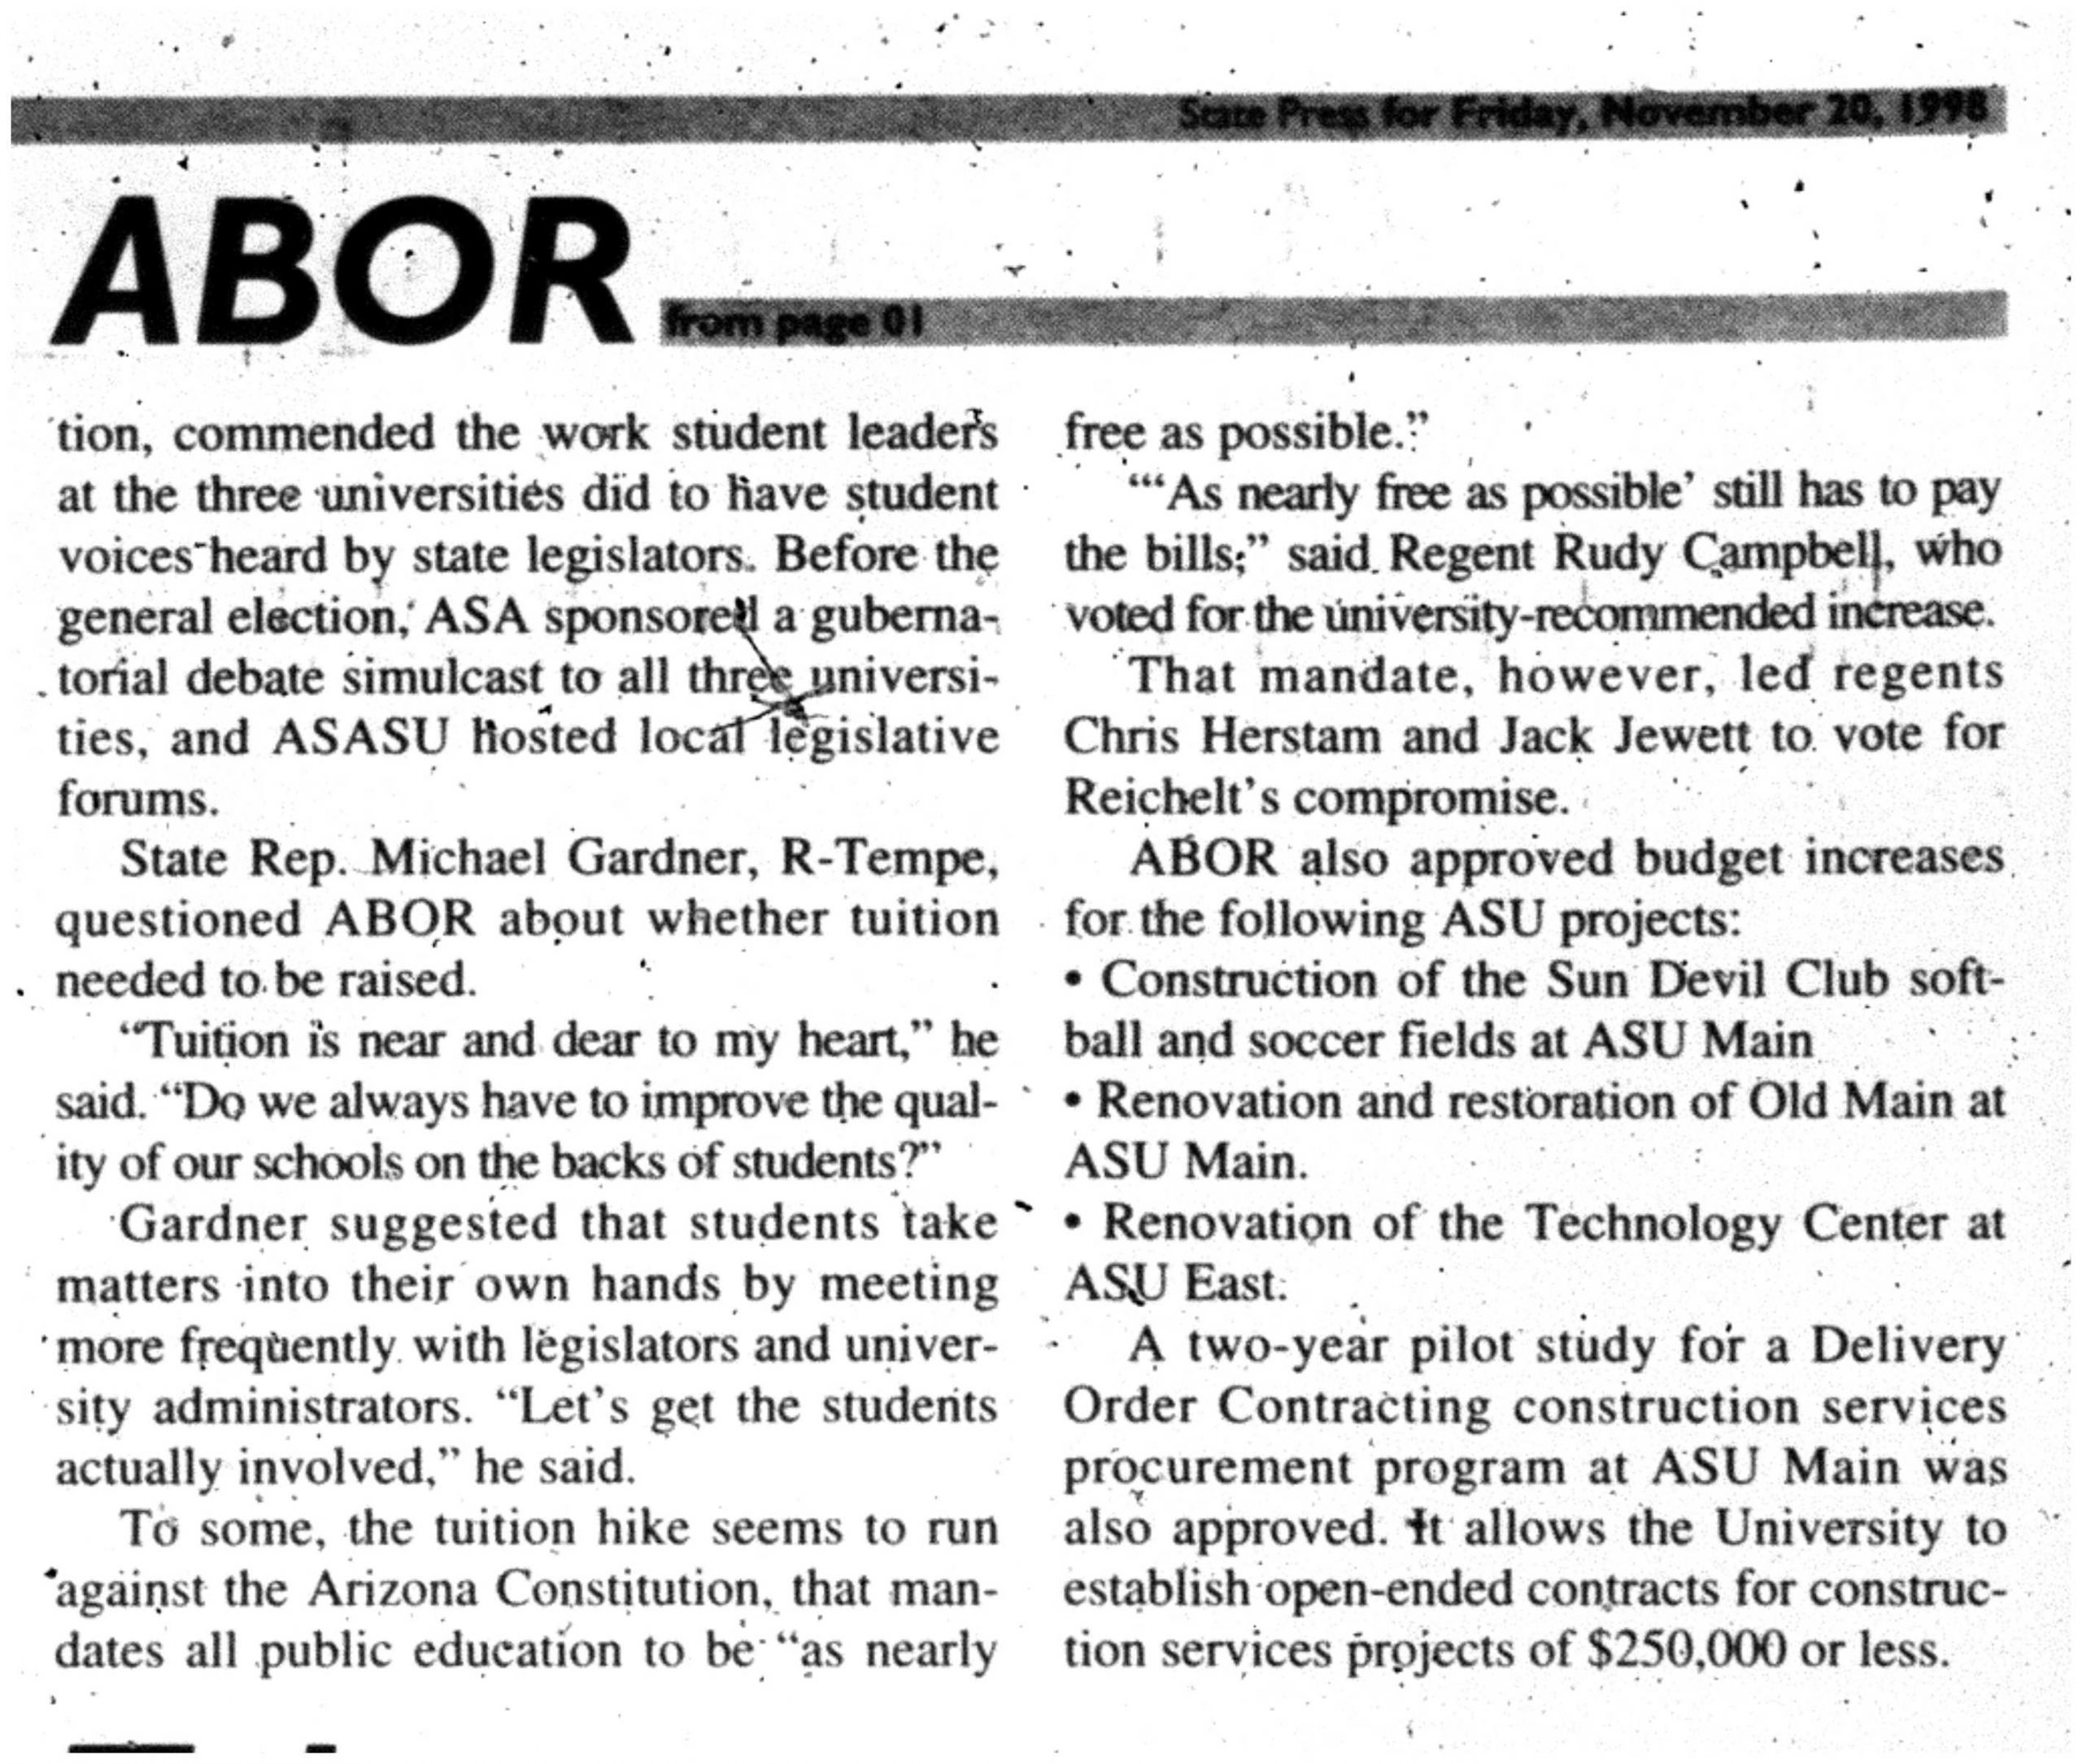 ABOR approves 5 percent tuition hike